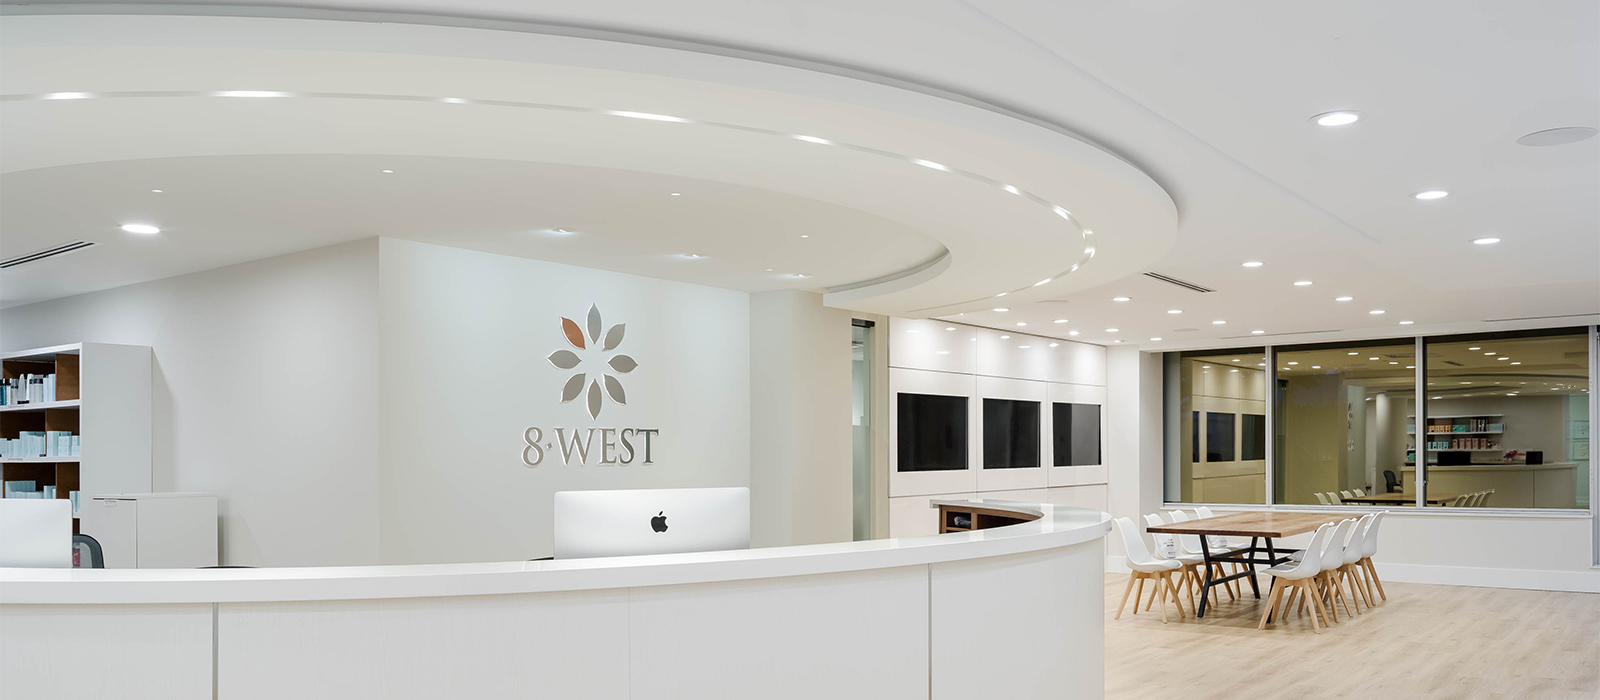 Fenos LED Lighting Project Office 8WestWeb Banner